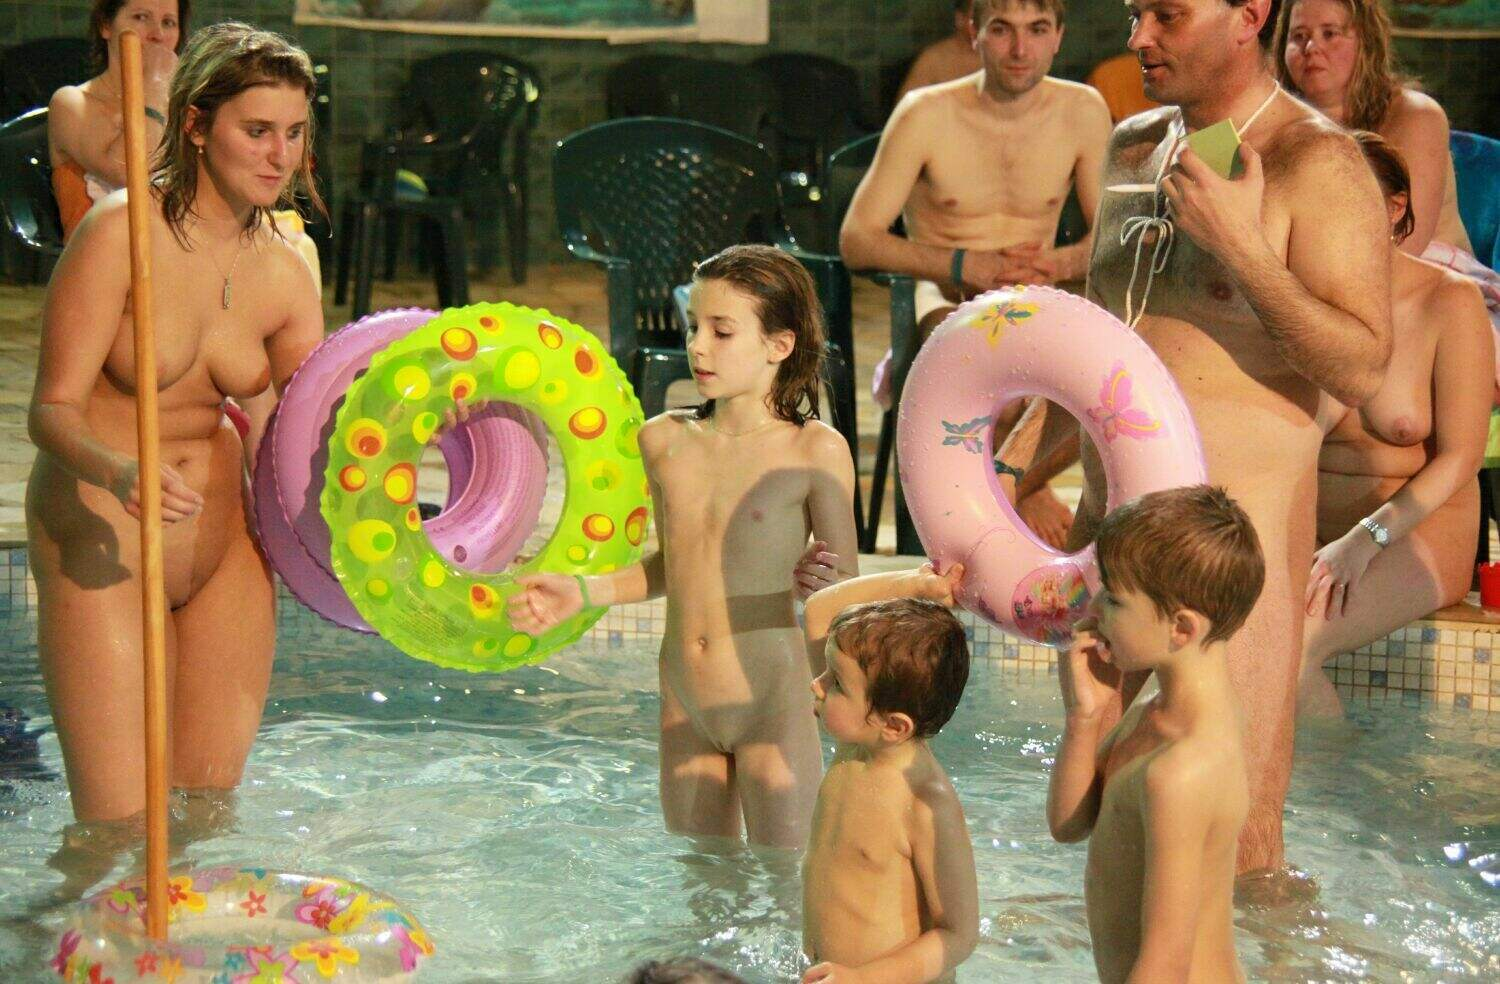 nudist-family-vacation-3d Photo of nudist families - Naturist Club Games [Naturisе Family Events]